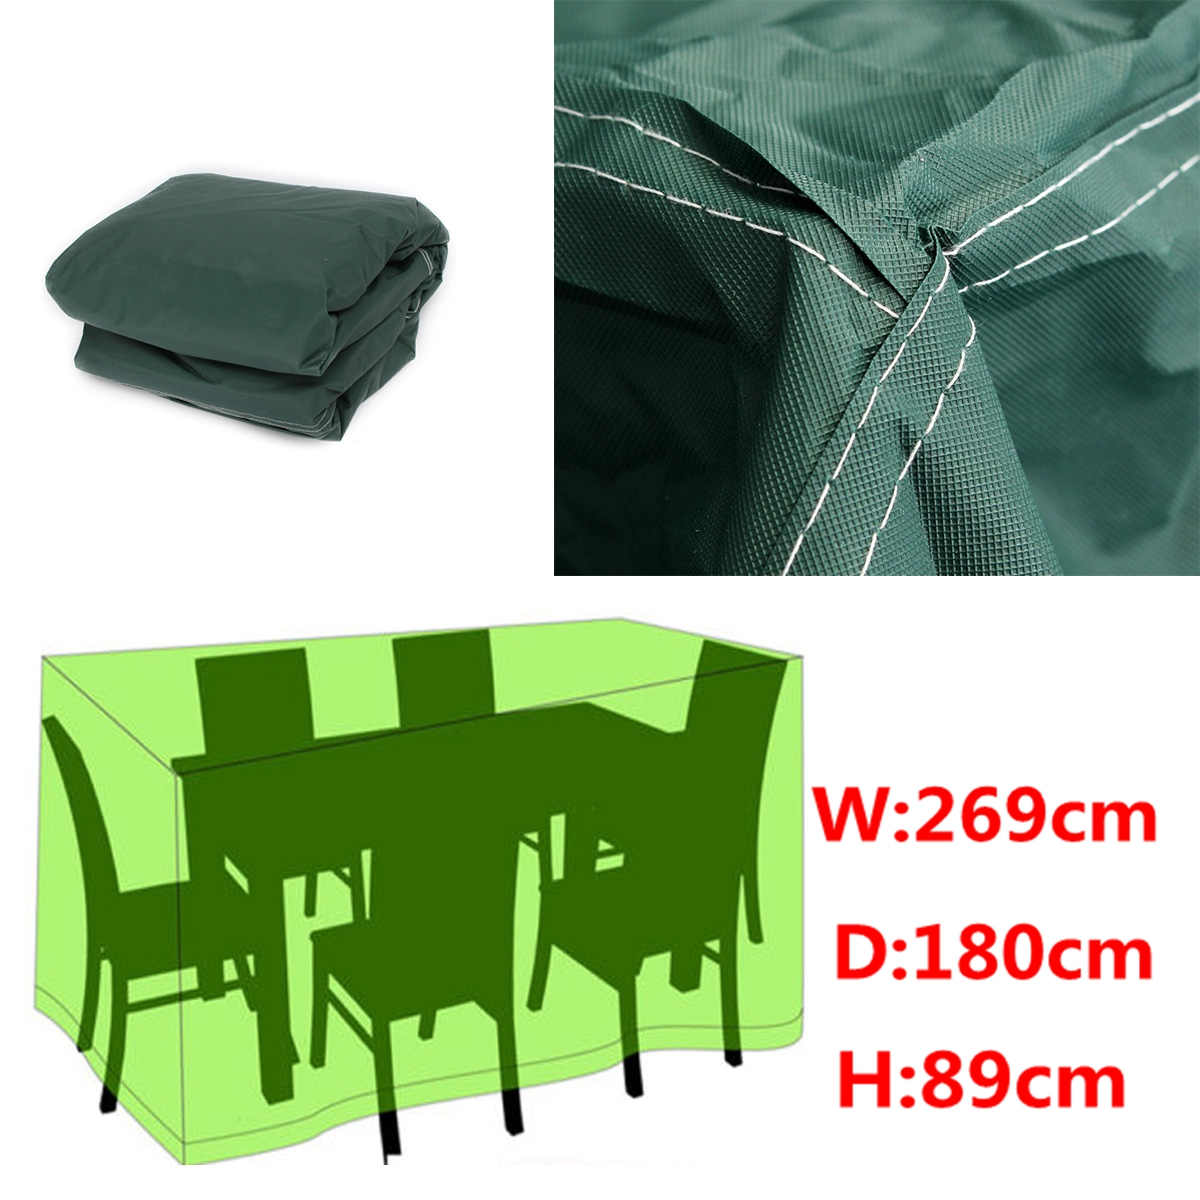 269x180x89 Rectangular Outdoor Furniture Cover Waterproof Patio Table Chair D